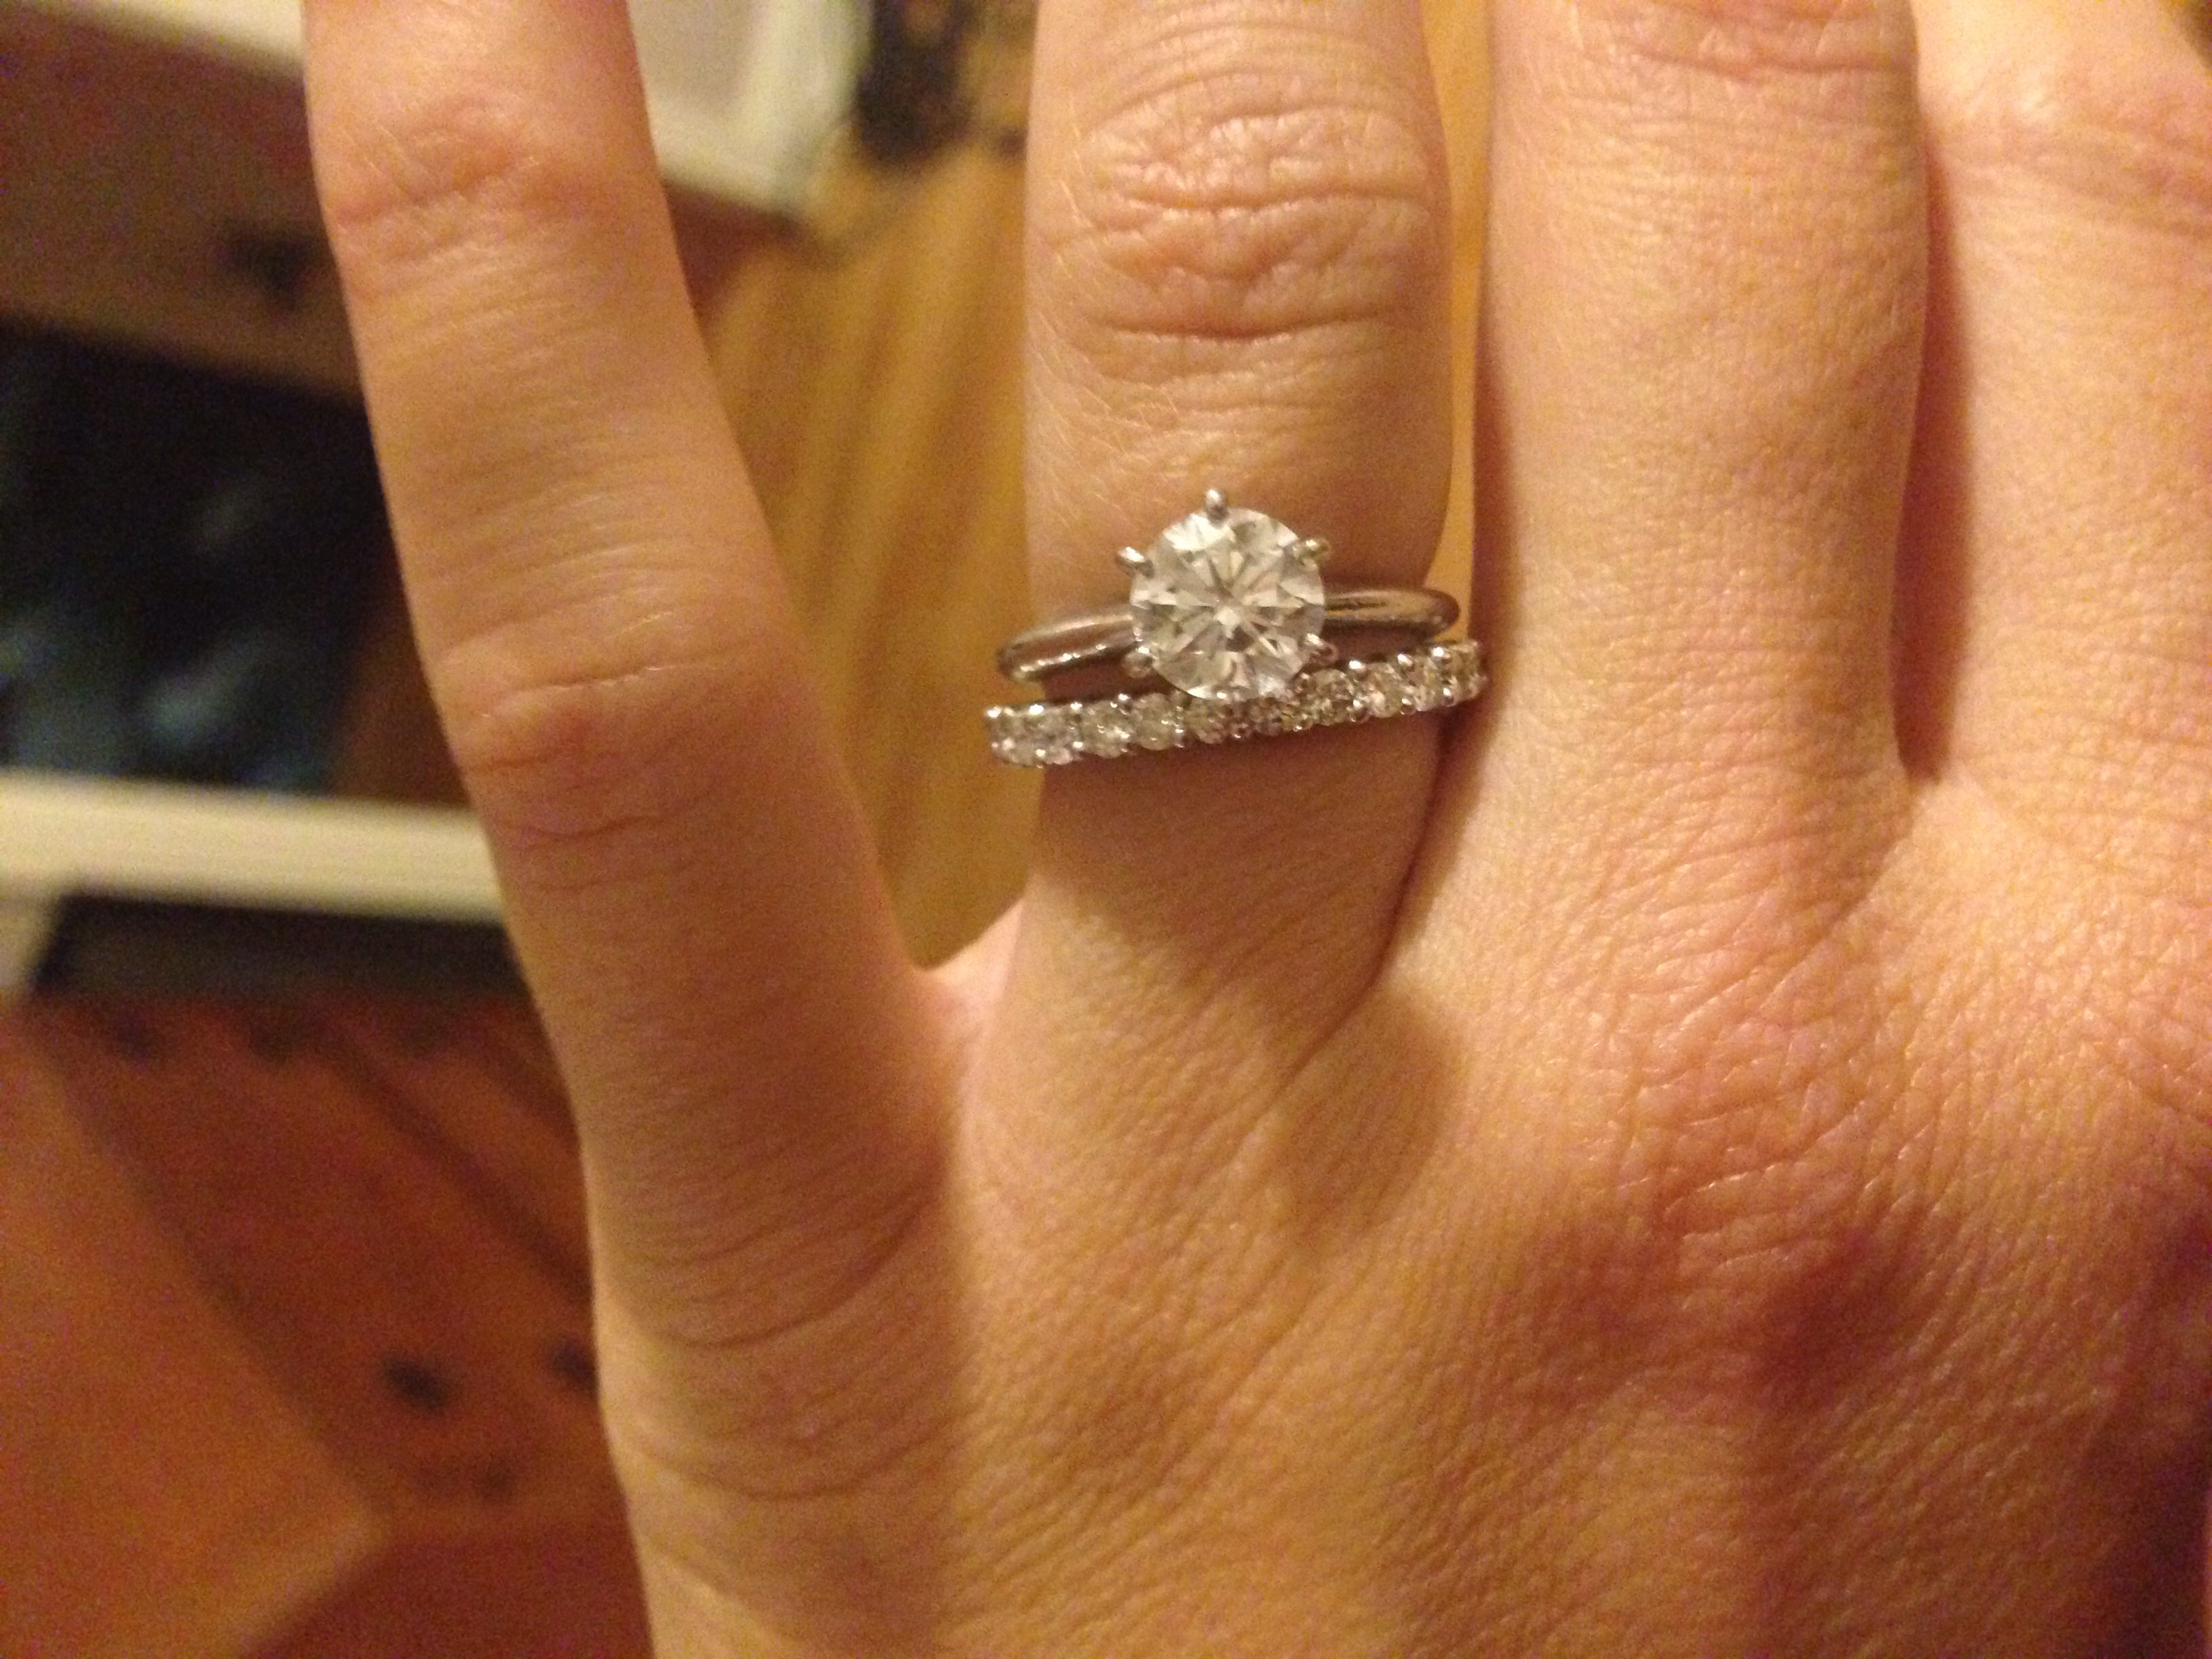 solitaire engagement paired with infinity band infinity diamond wedding band guessing my choice in wedding band I have a 1 25 carat engagement ring with knife edge I ve always thought it would pair nicely with an infinity ring